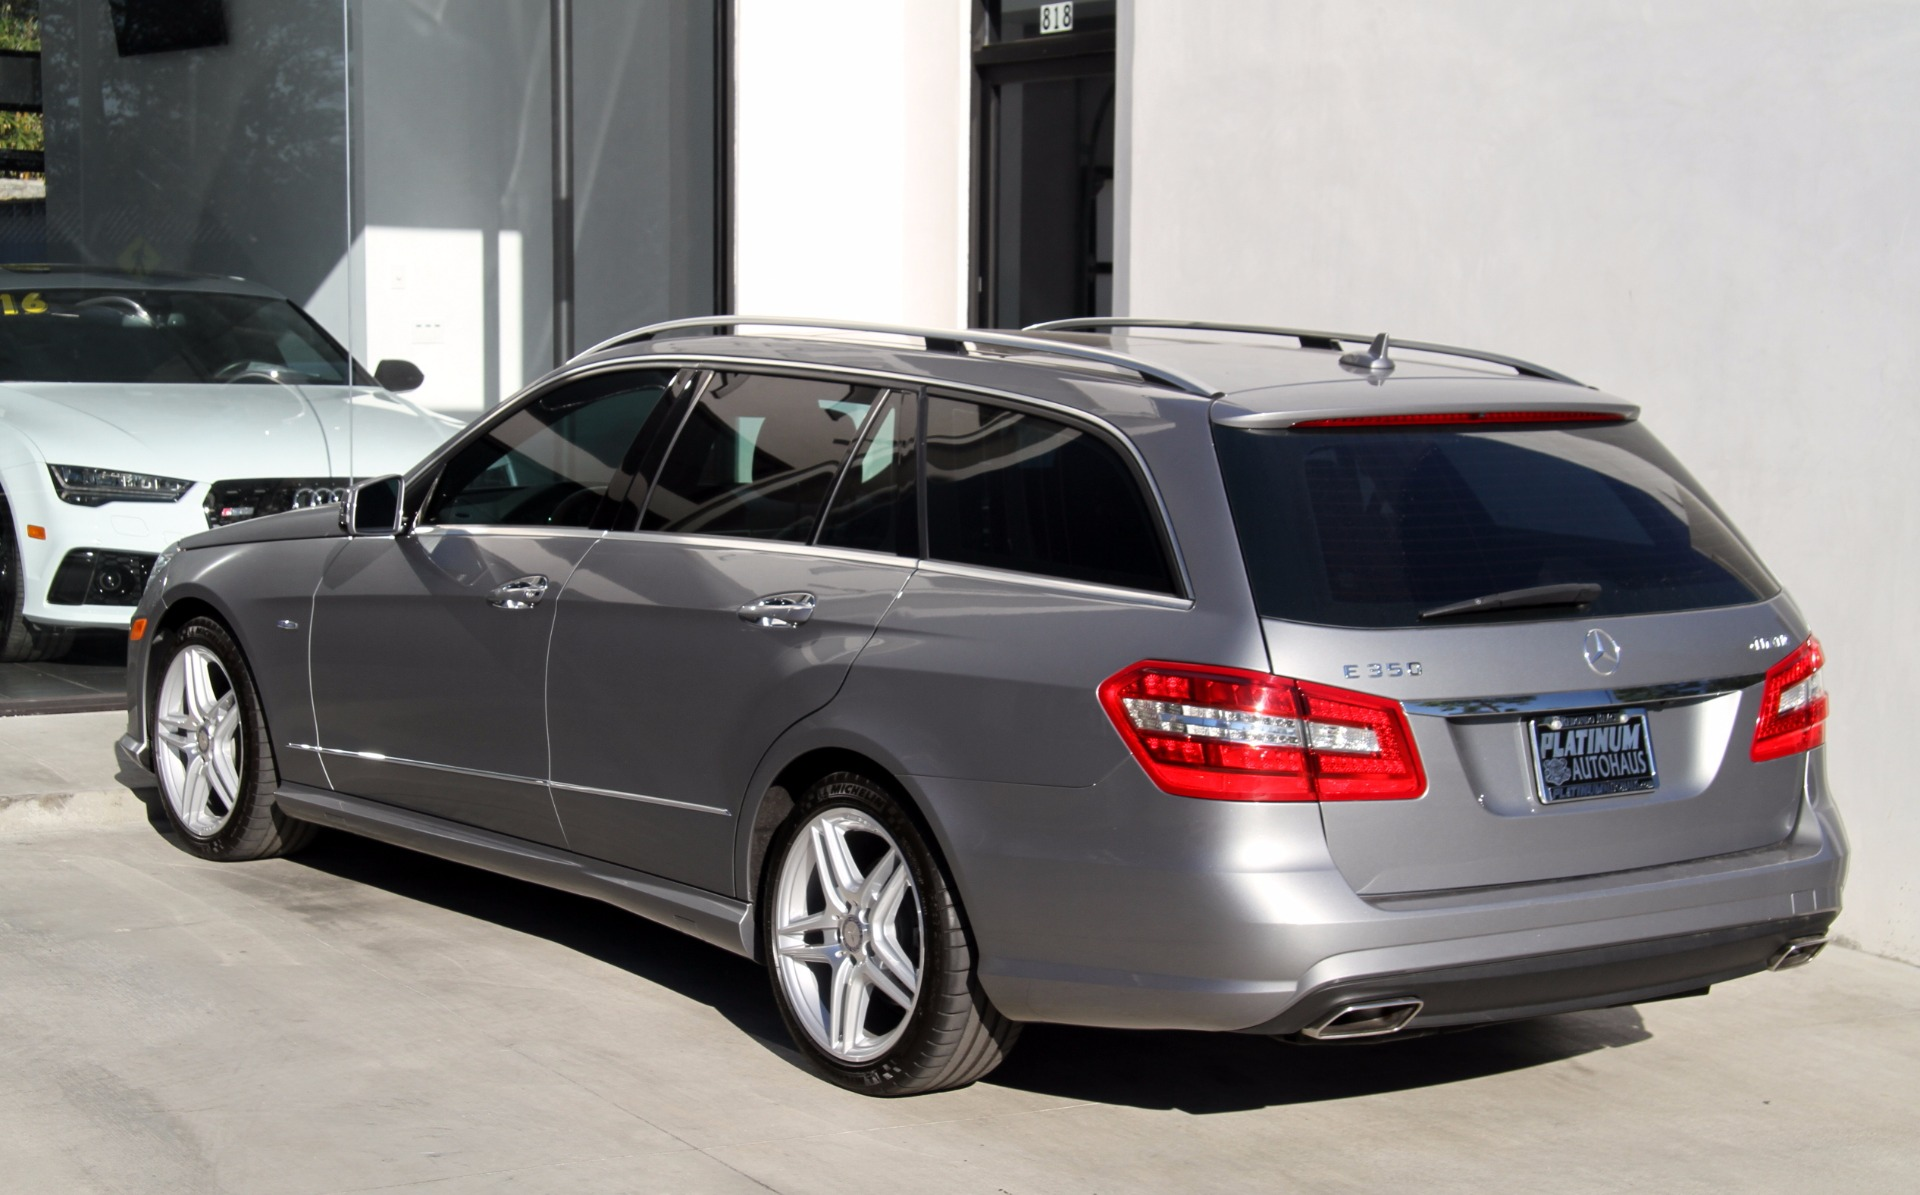 2012 mercedes benz e 350 sport 4matic wagon stock 554584. Black Bedroom Furniture Sets. Home Design Ideas